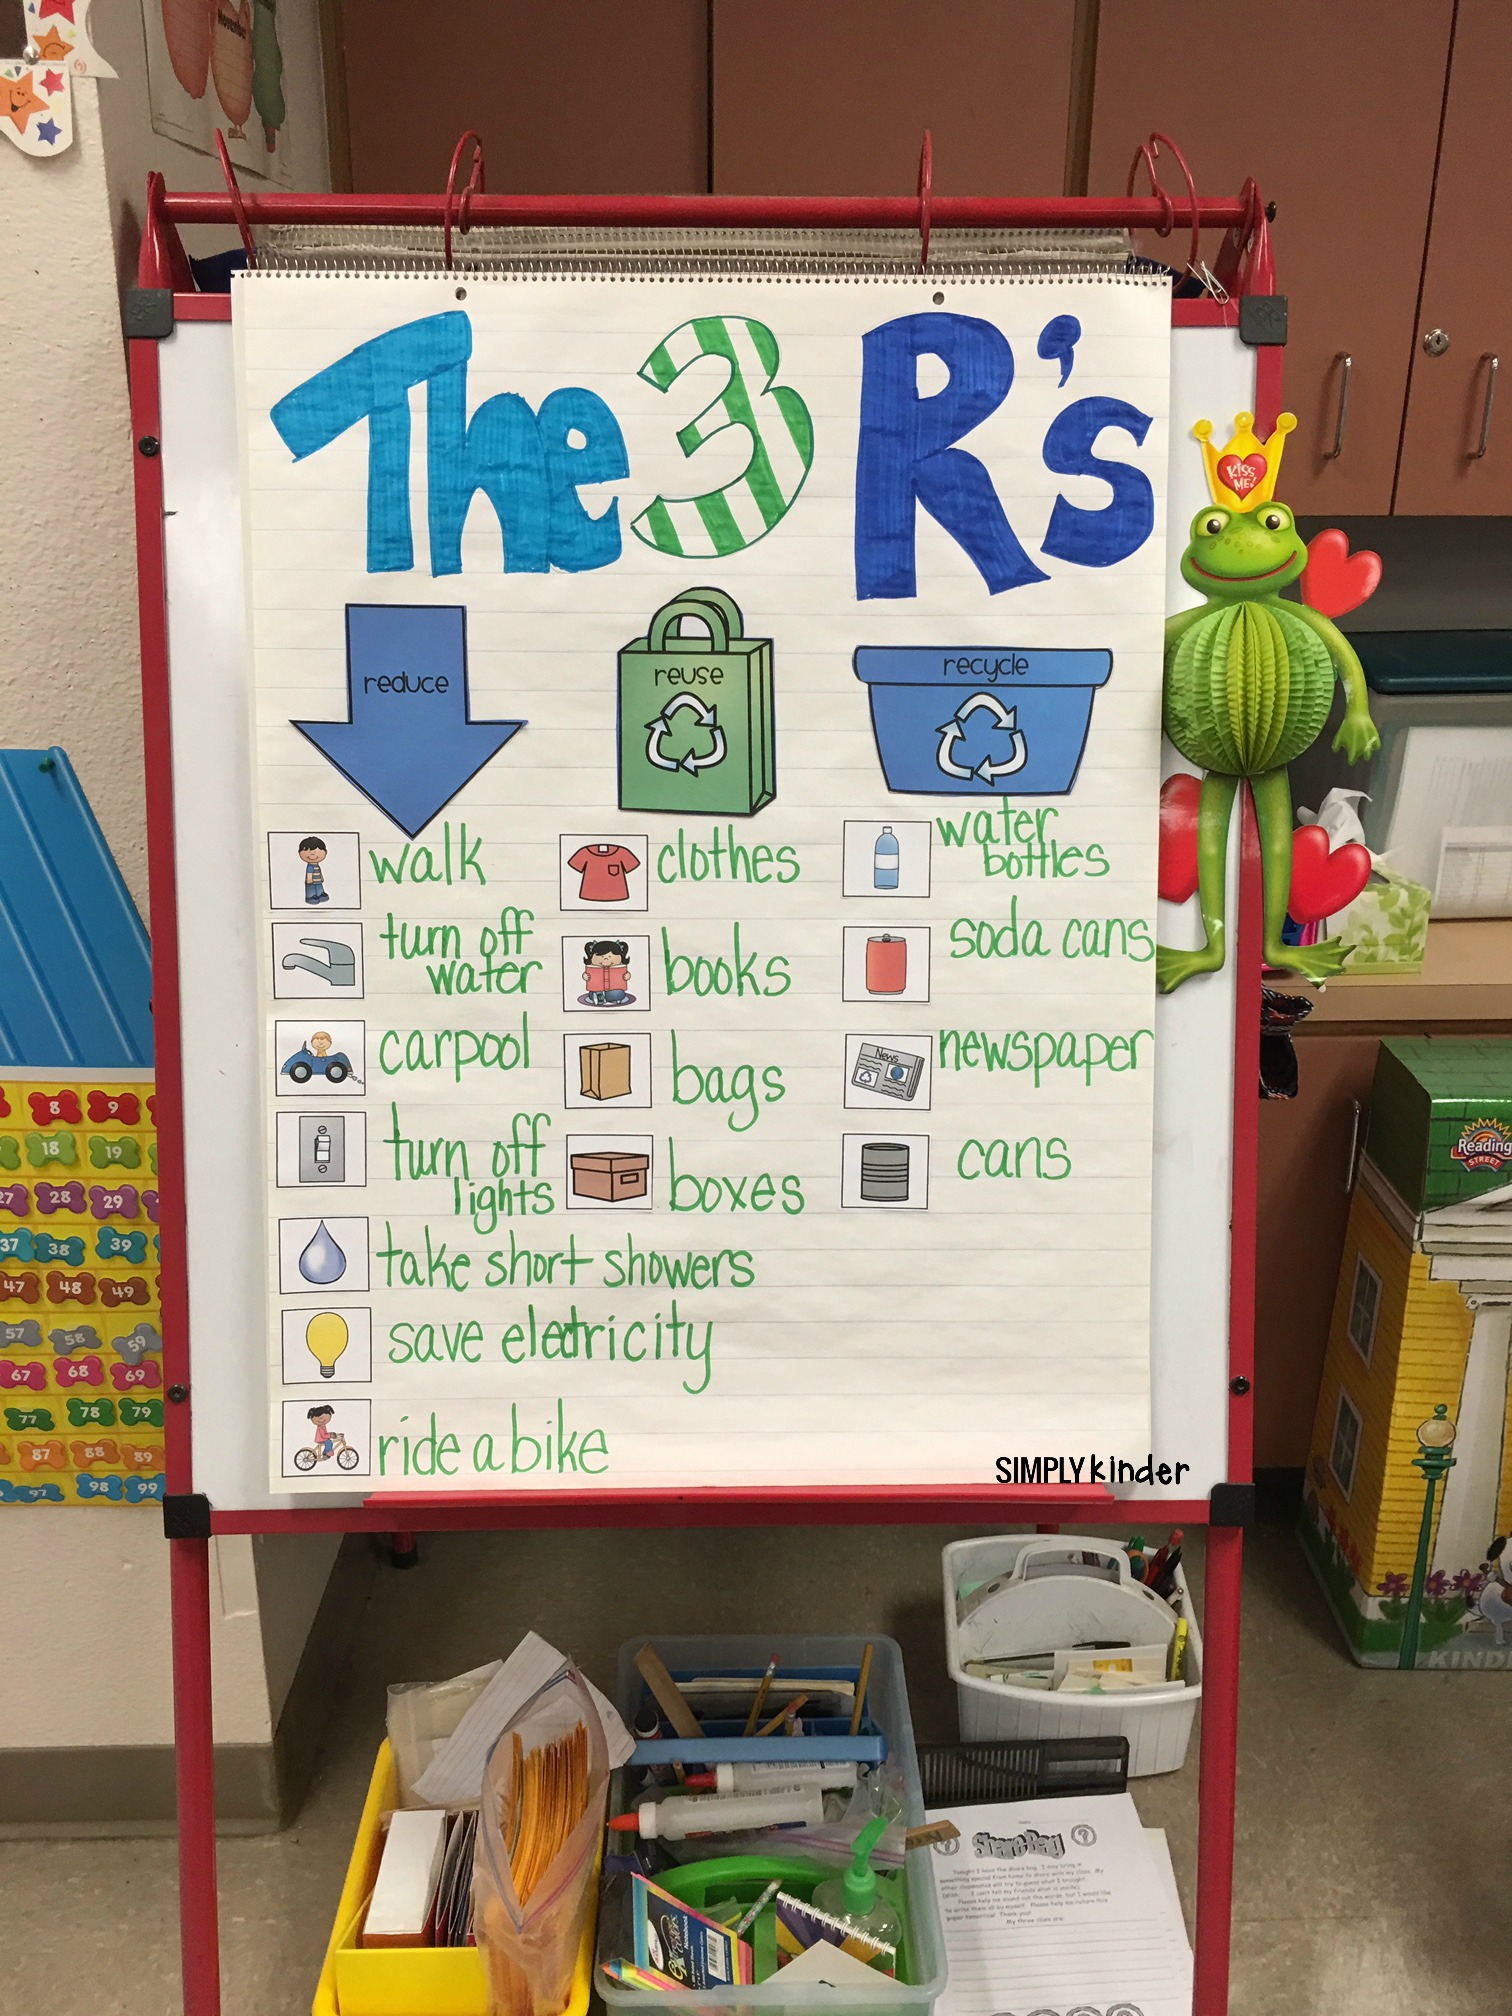 Free Recycling Sort - Simply Kinder - Free Printable Recycling | Free Printable Recycling Worksheets